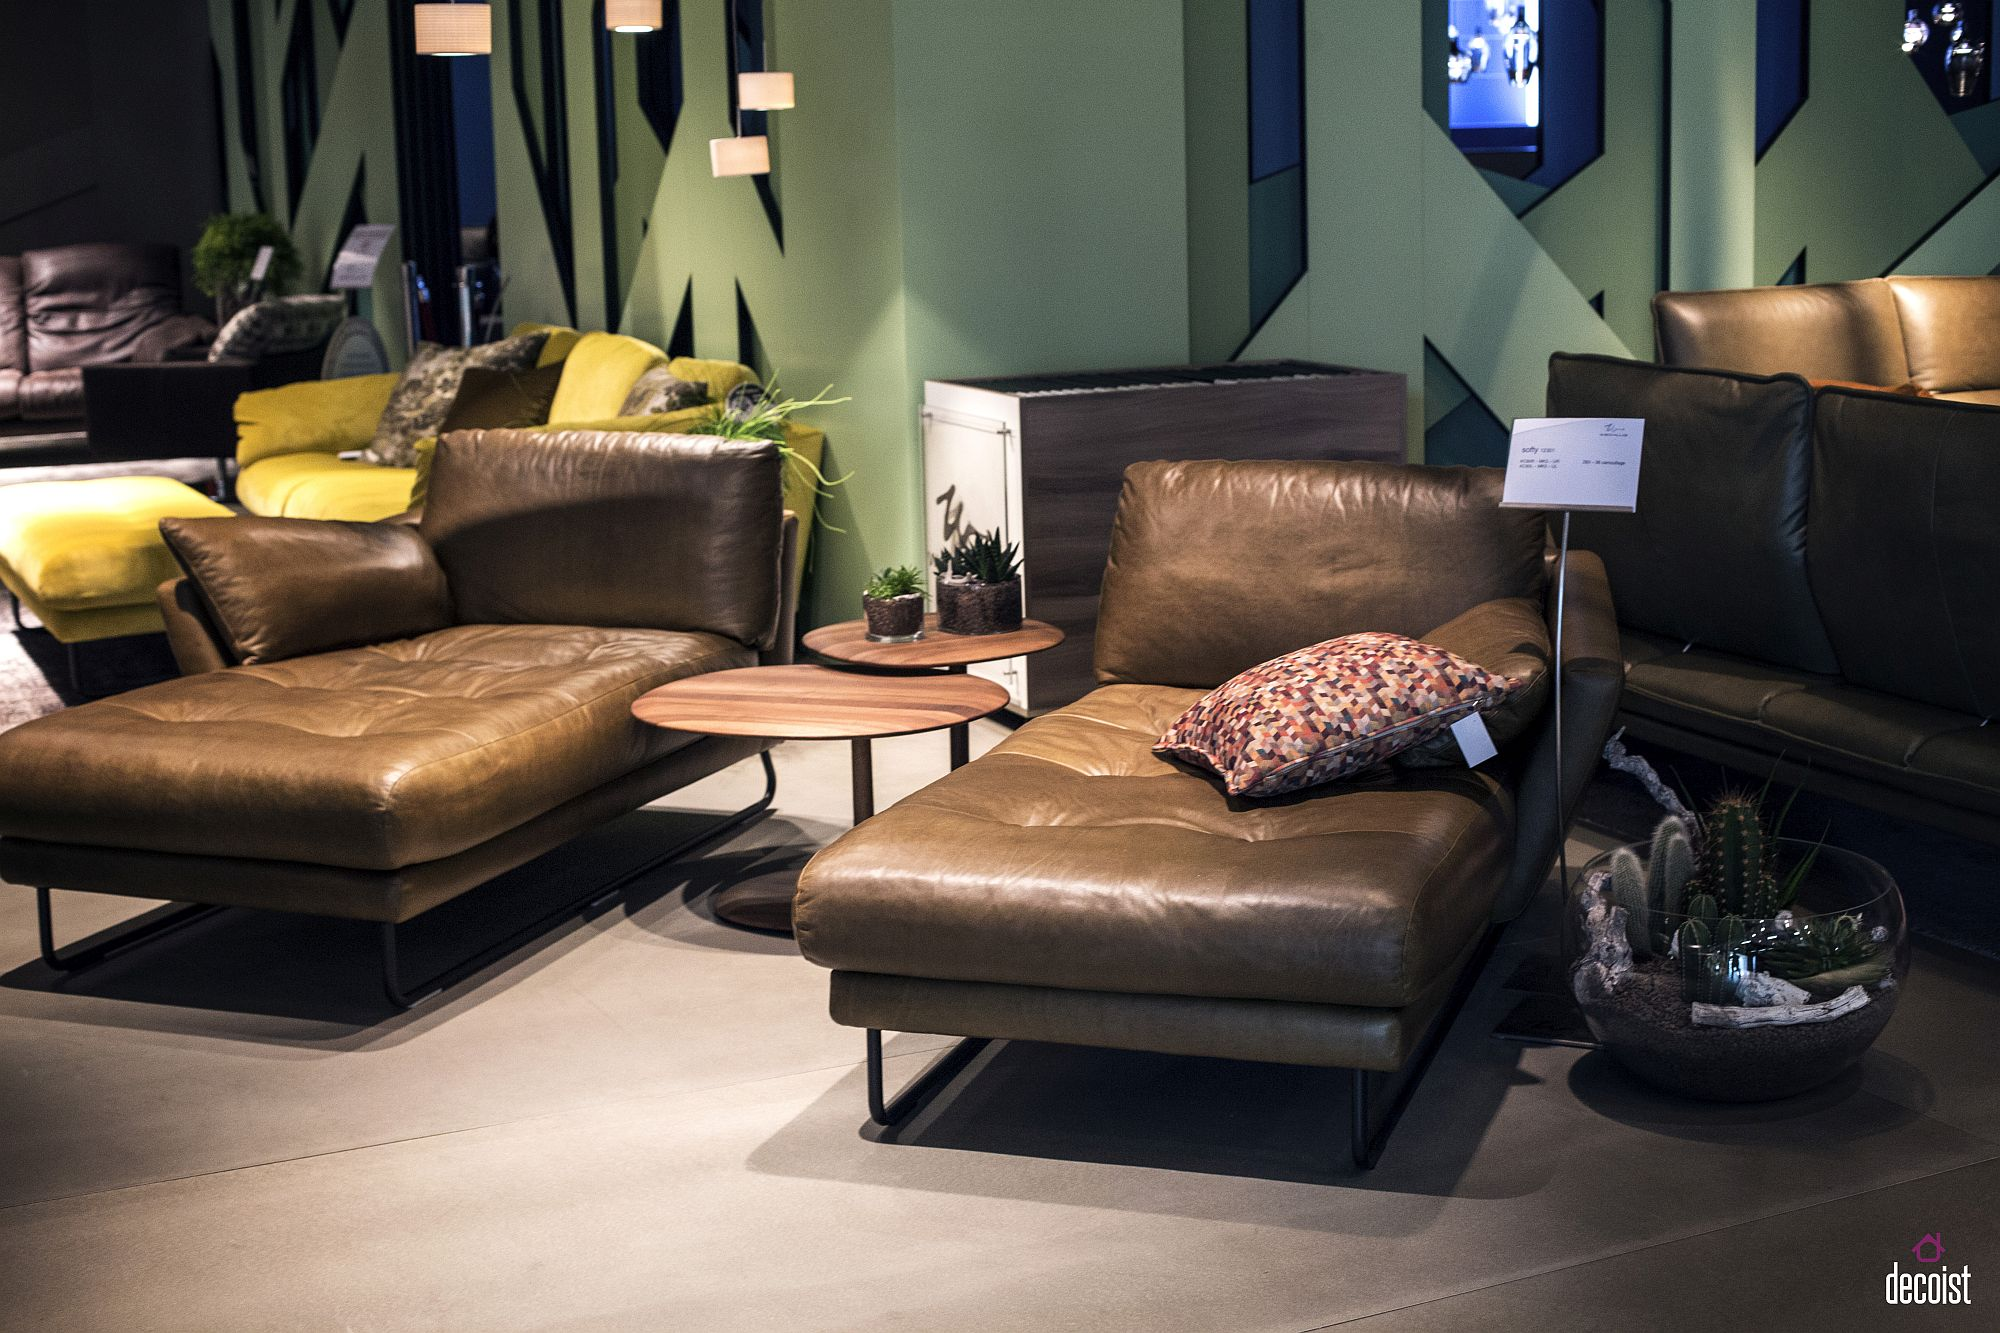 Leather-lounger-coupled-with-wooden-end-tables-in-the-living-room